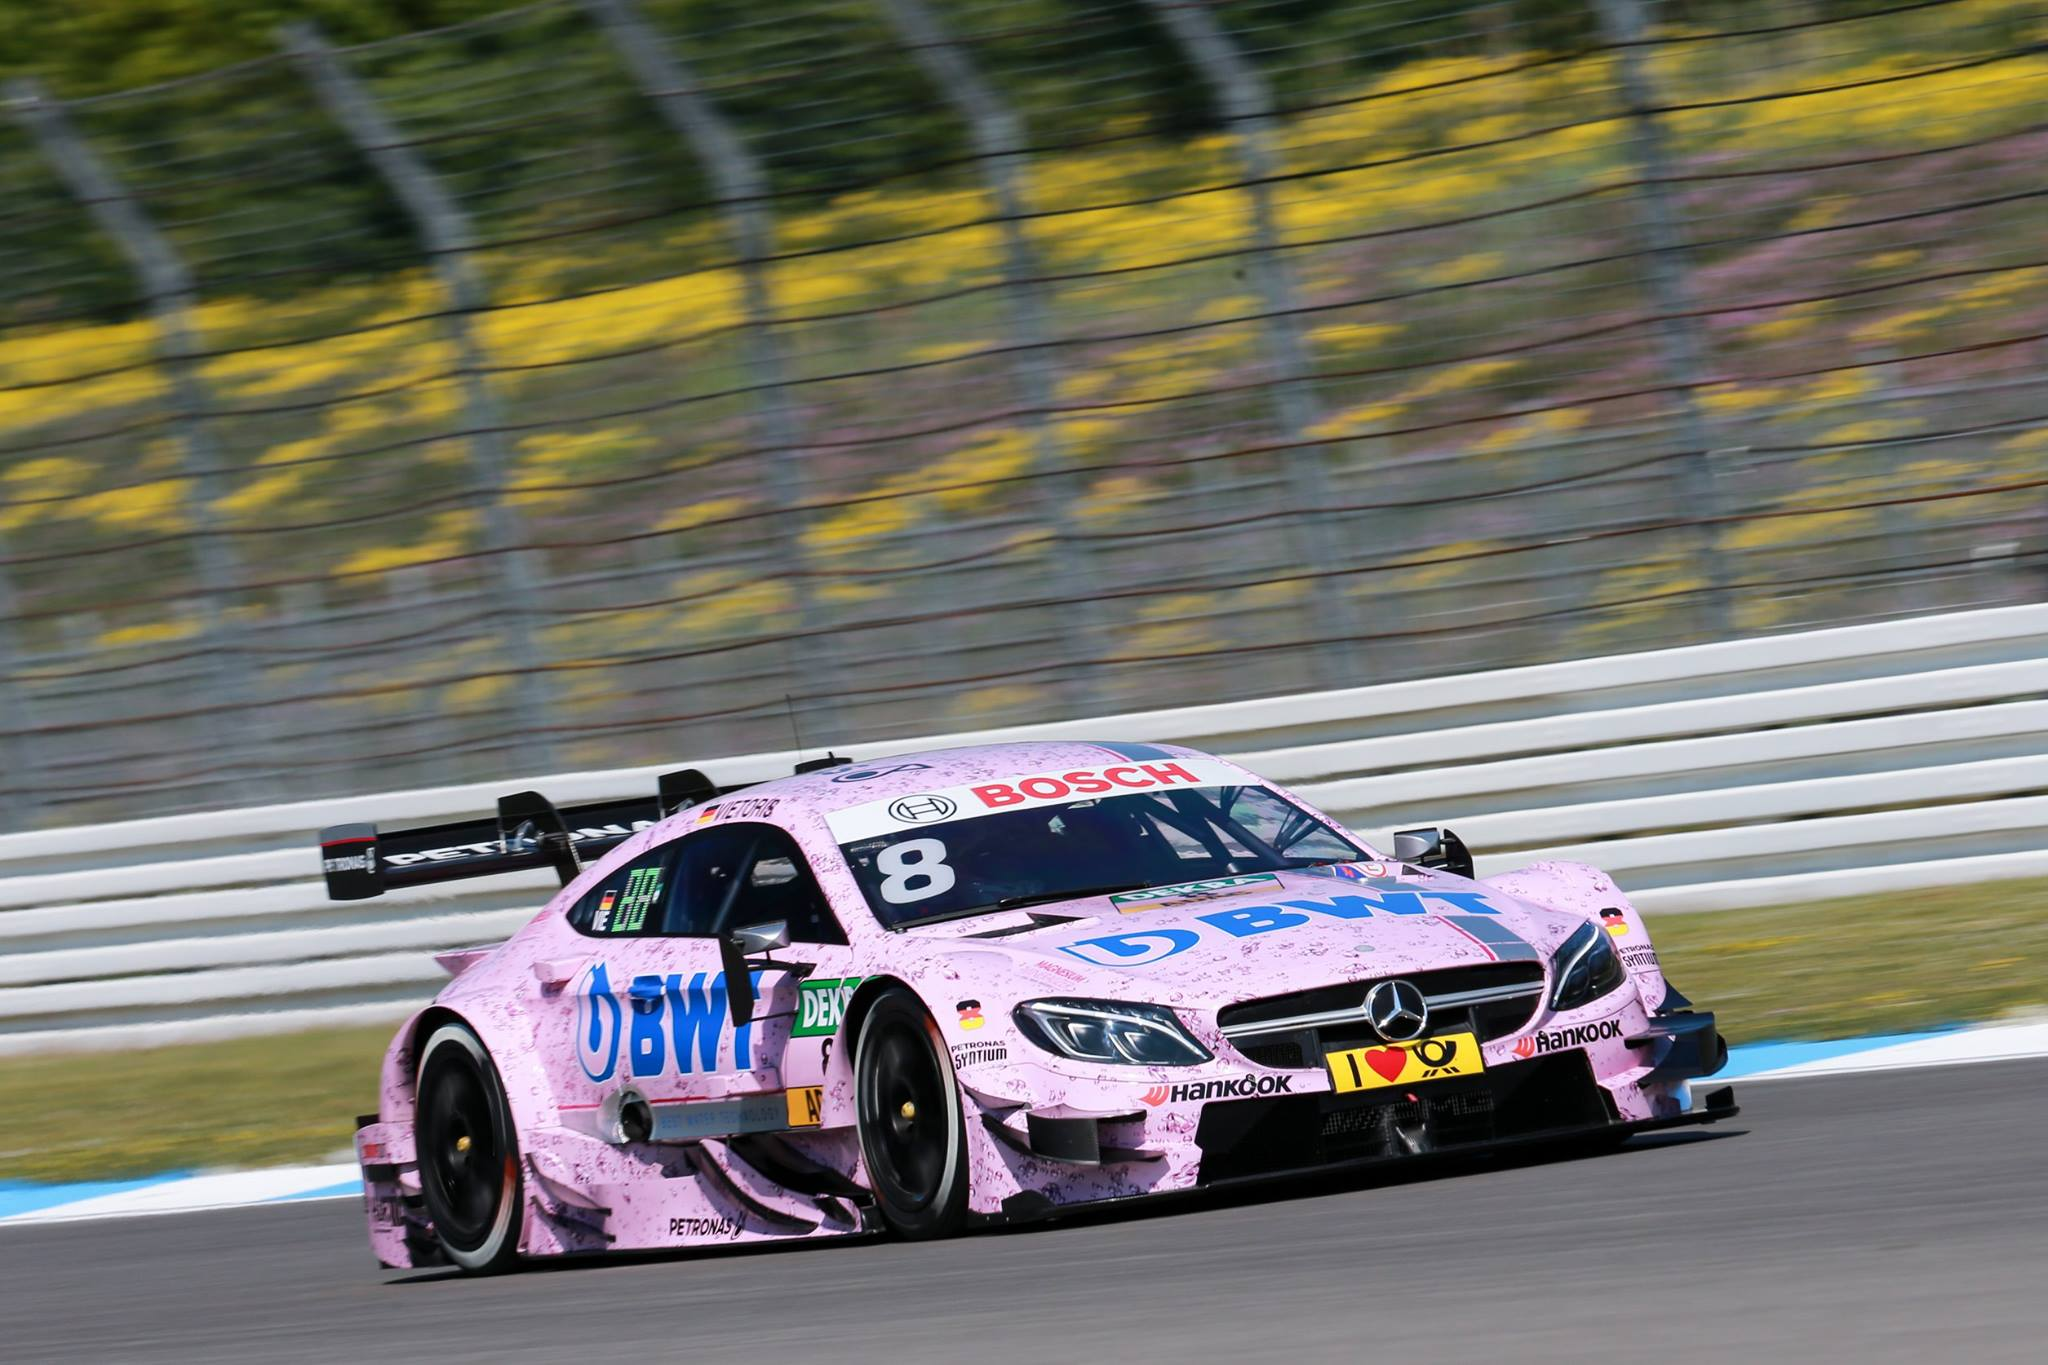 Race Car Wallpaper Images Exclusive Onboard The Mercedes Amg C63 Dtm Car Review